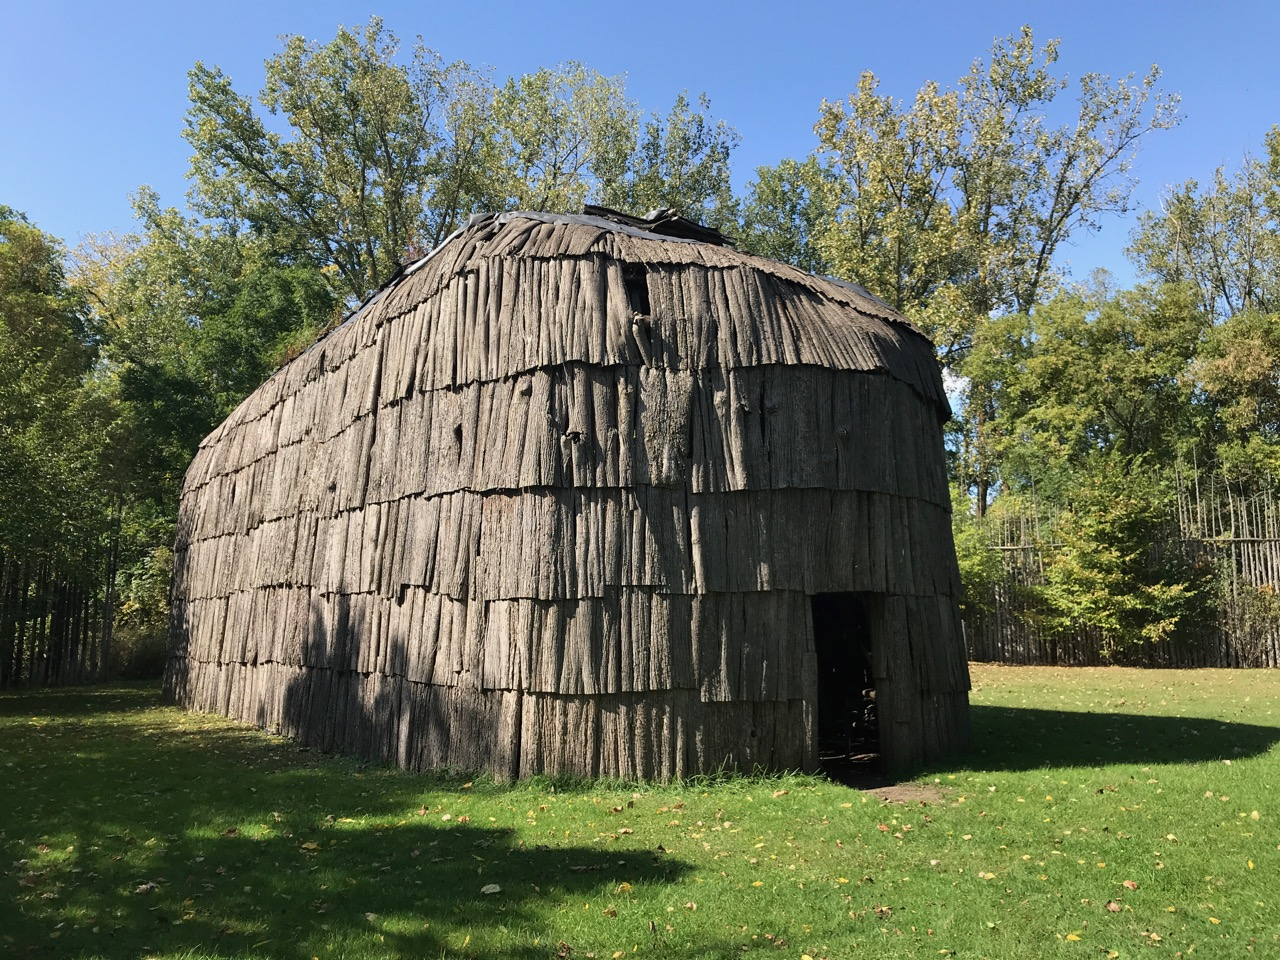 Reproduction longhouse at Kana: to Village, Brantford